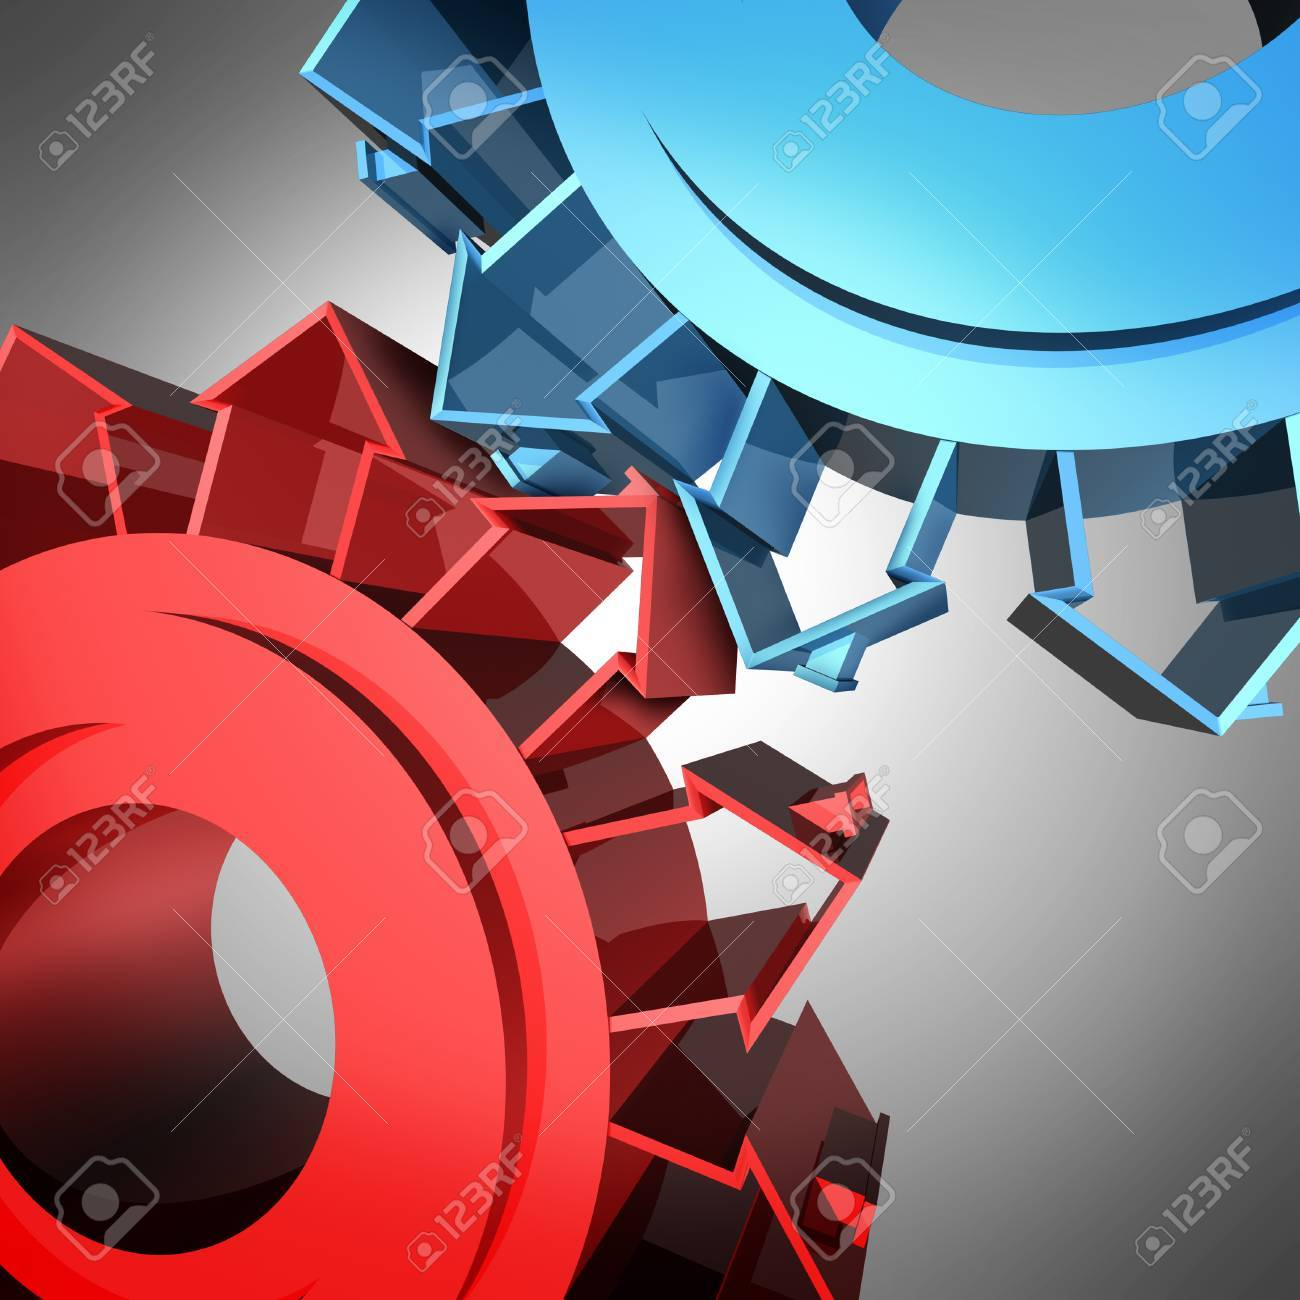 Housing industry and home construction real estate concept as two gears or cog wheels shaped as family residential structures as an icon of neighborhood cooperation and community network connections Stock Photo - 22666985